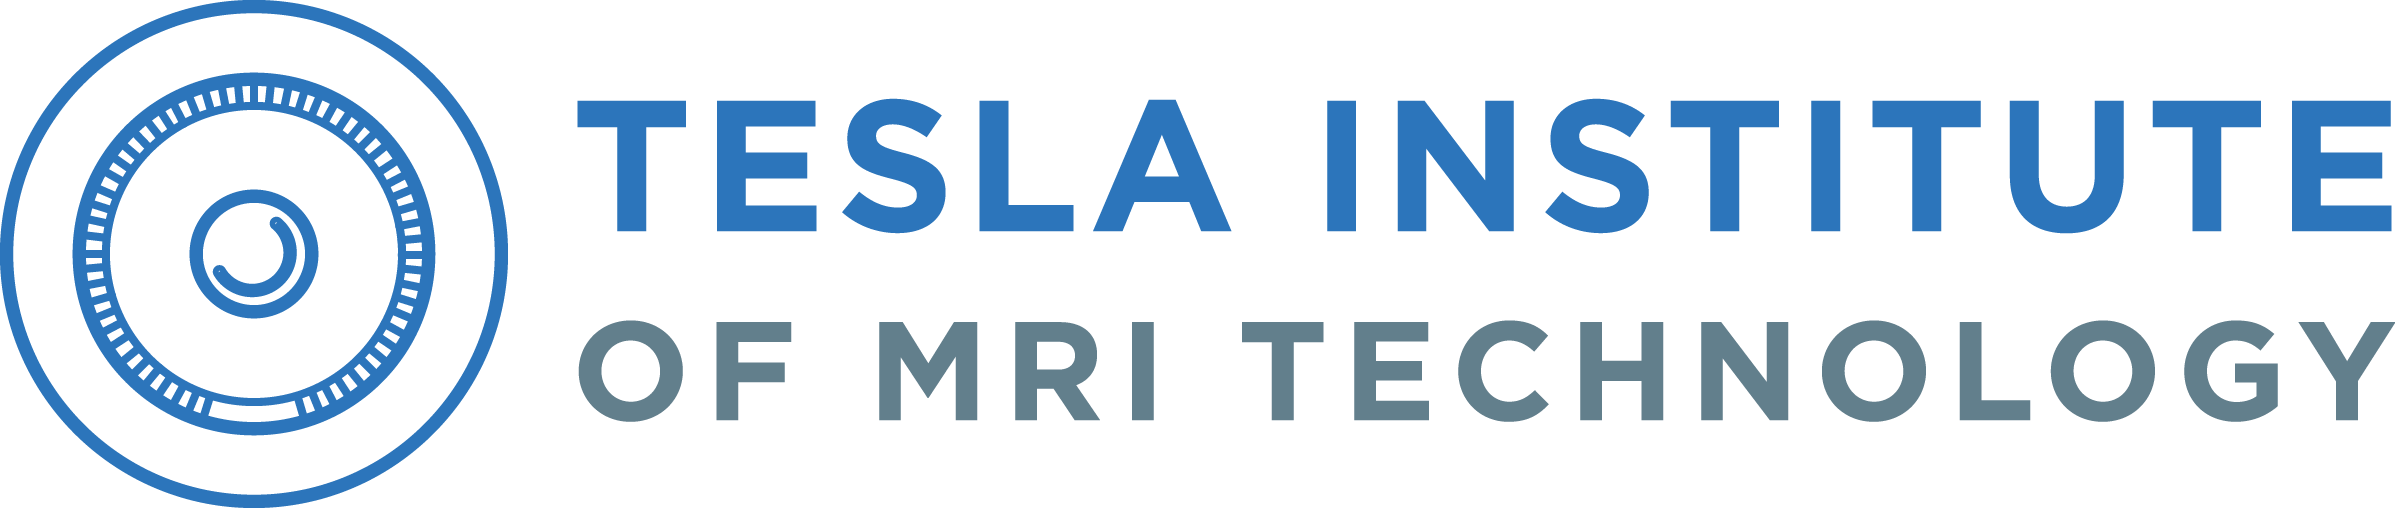 Tesla Institute of MRI Technology Logo